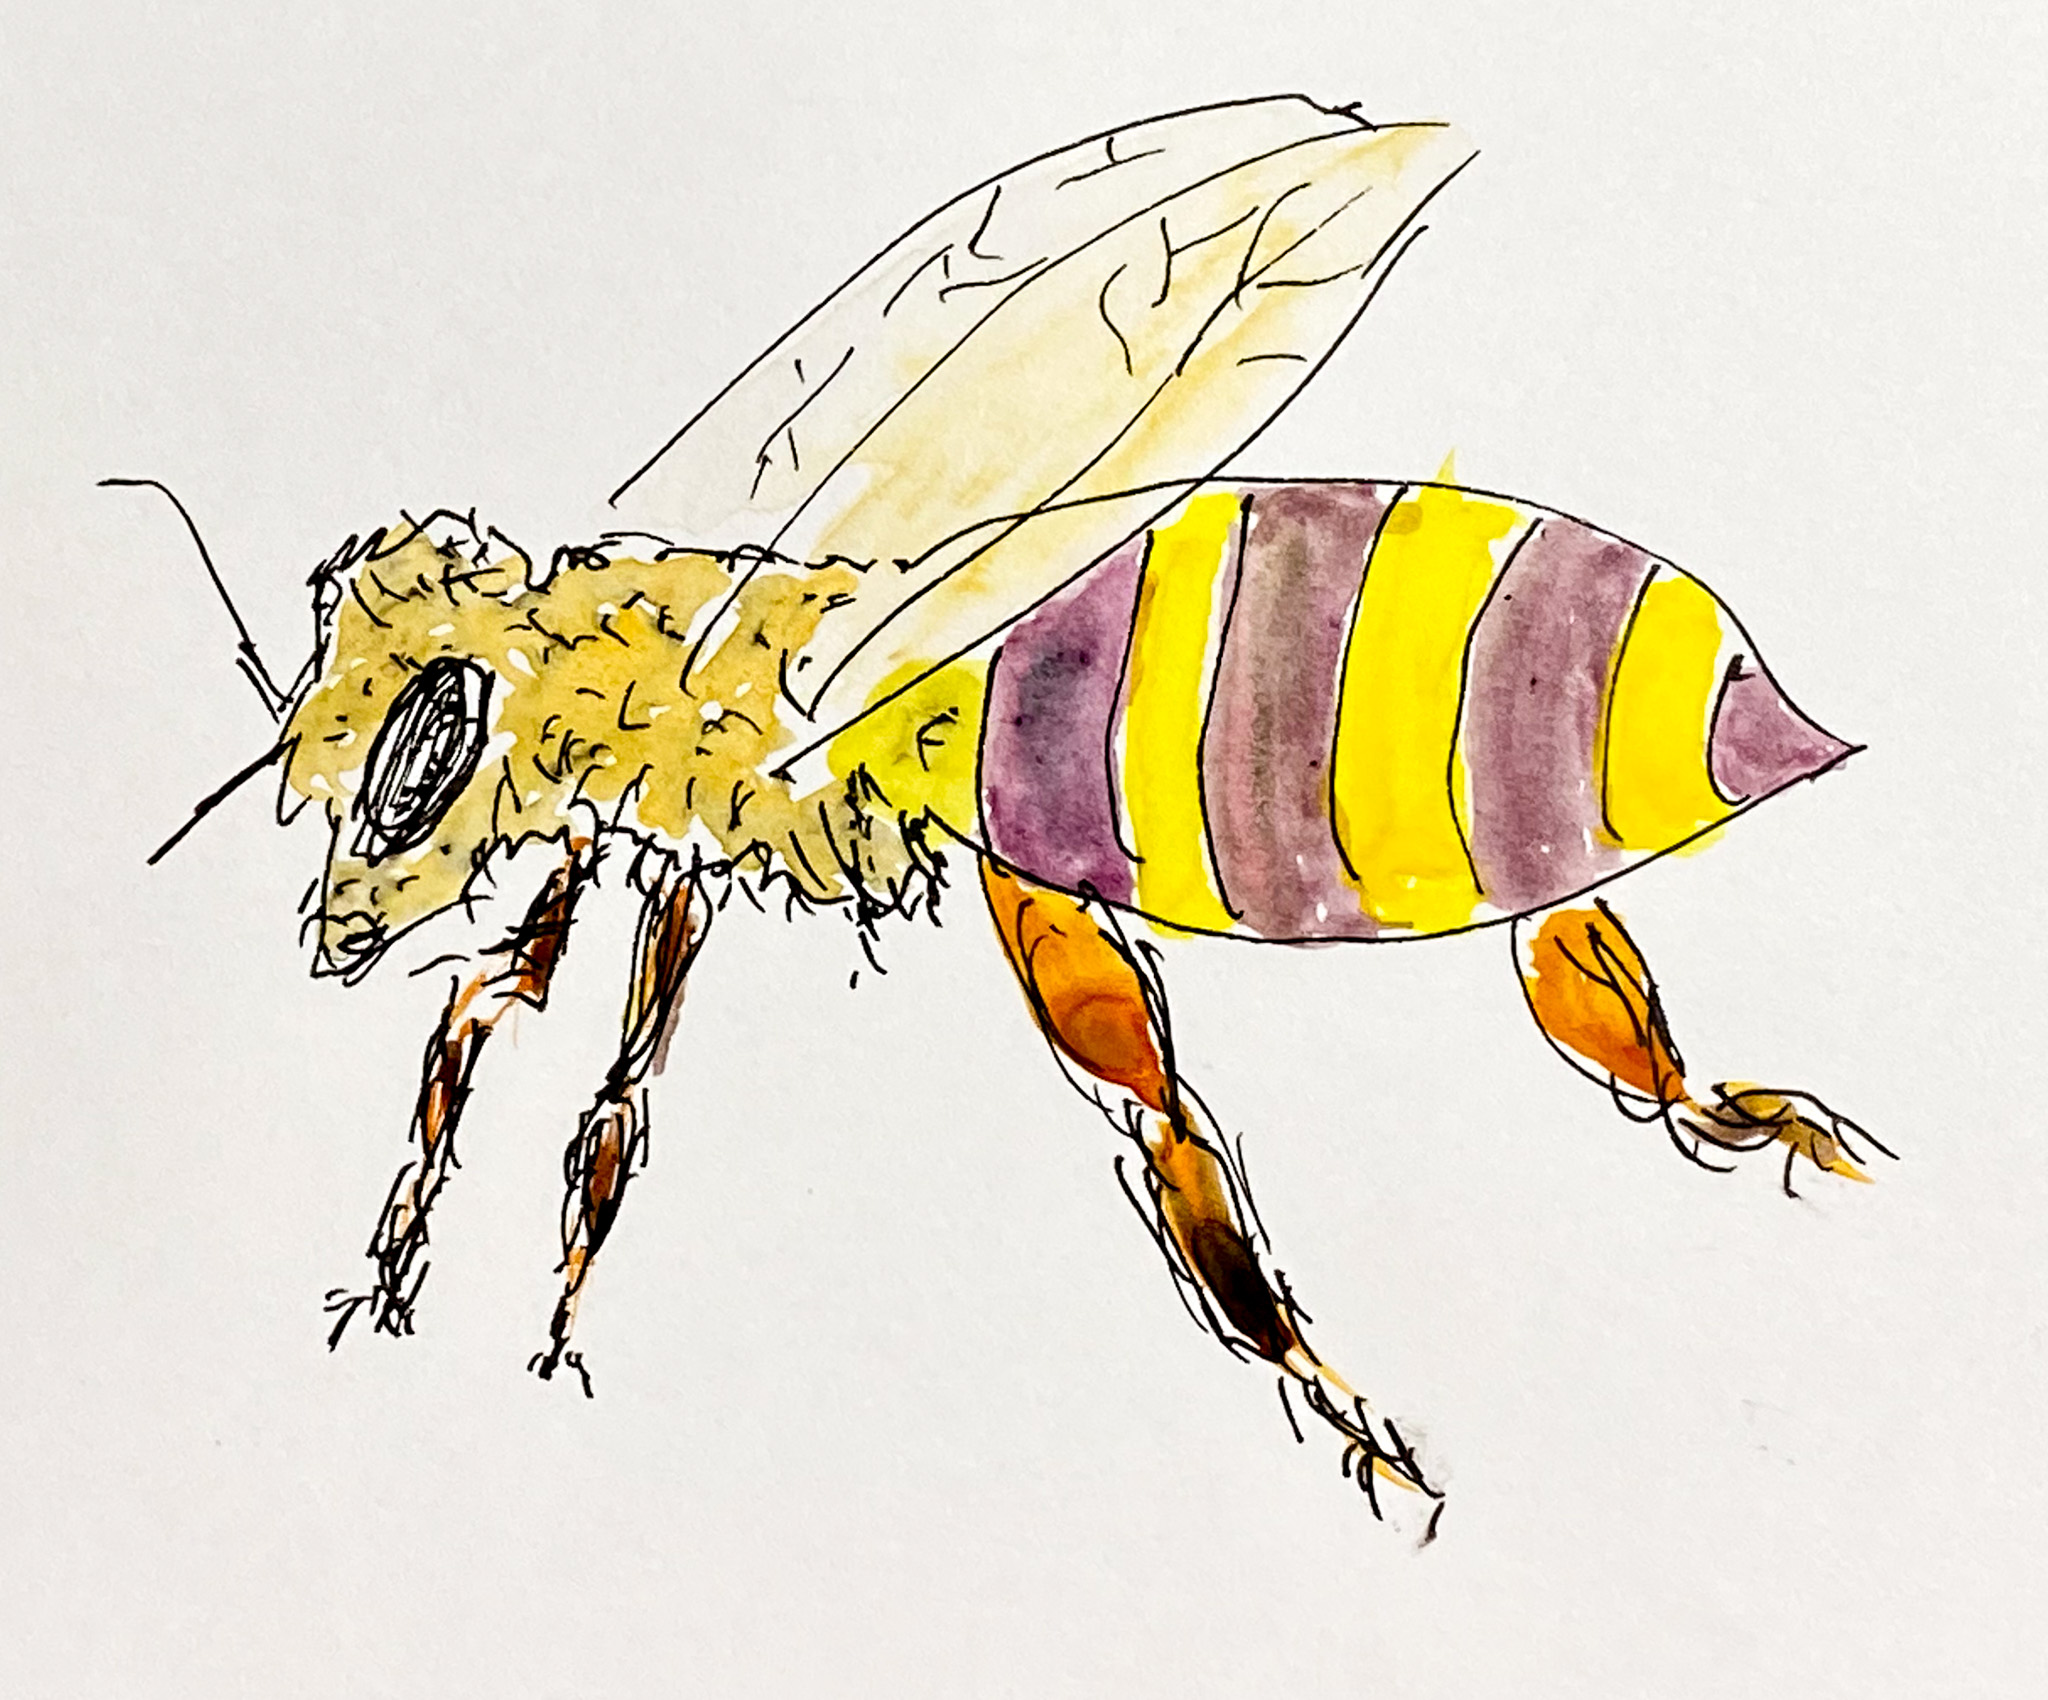 Inktober Day 15 - Honeybee